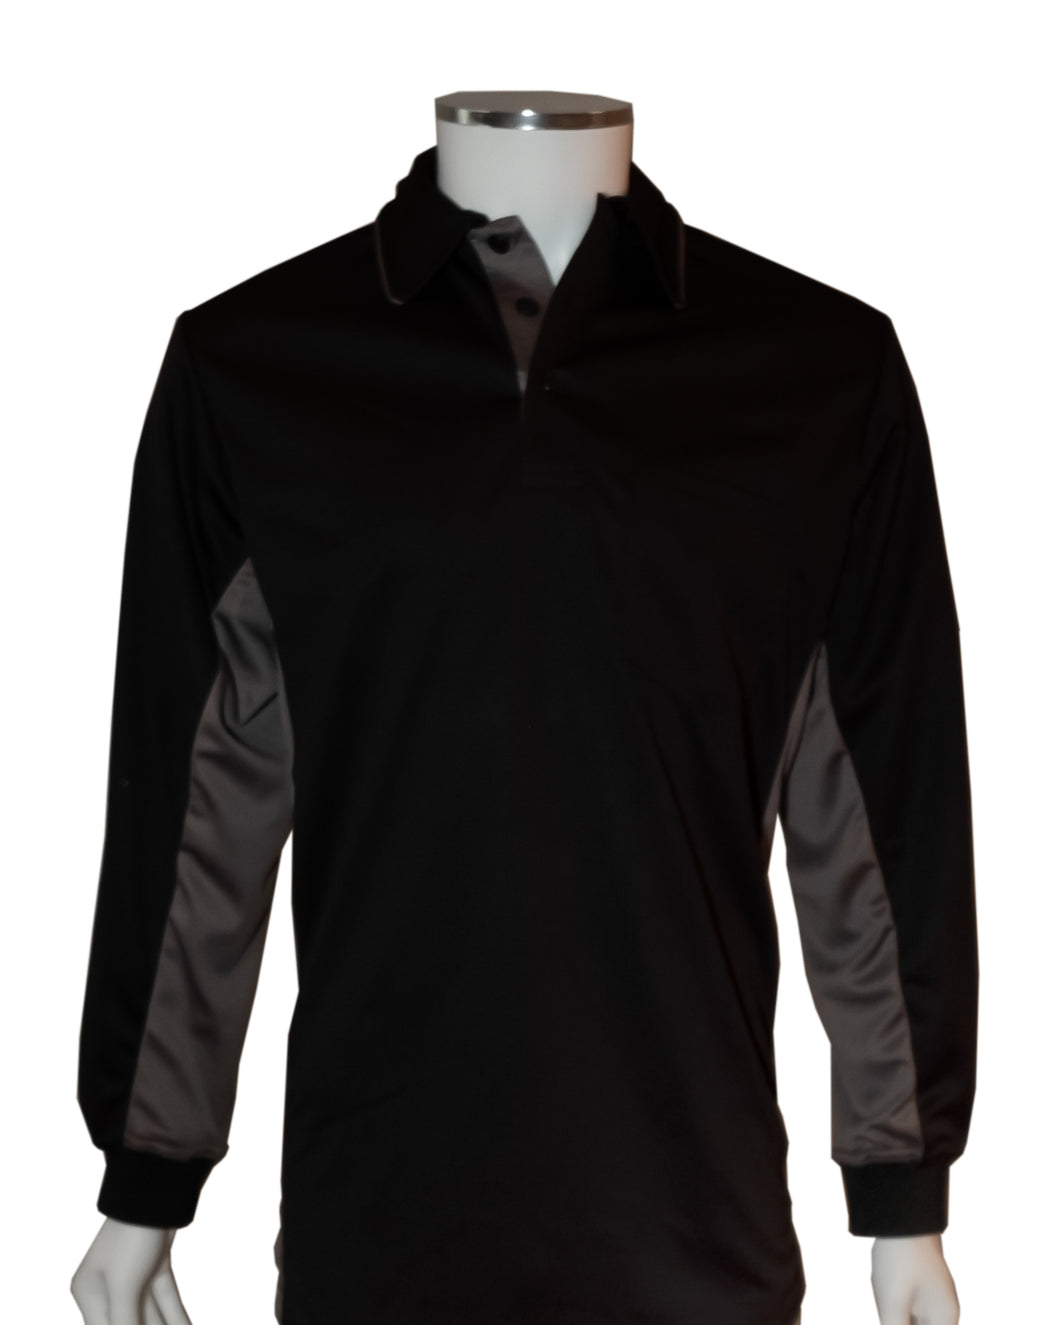 6b5c0c46486 (LONG SLEEVE) Current Major League Replica Umpire Shirt - BLACK with CHARCOAL  GRAY -